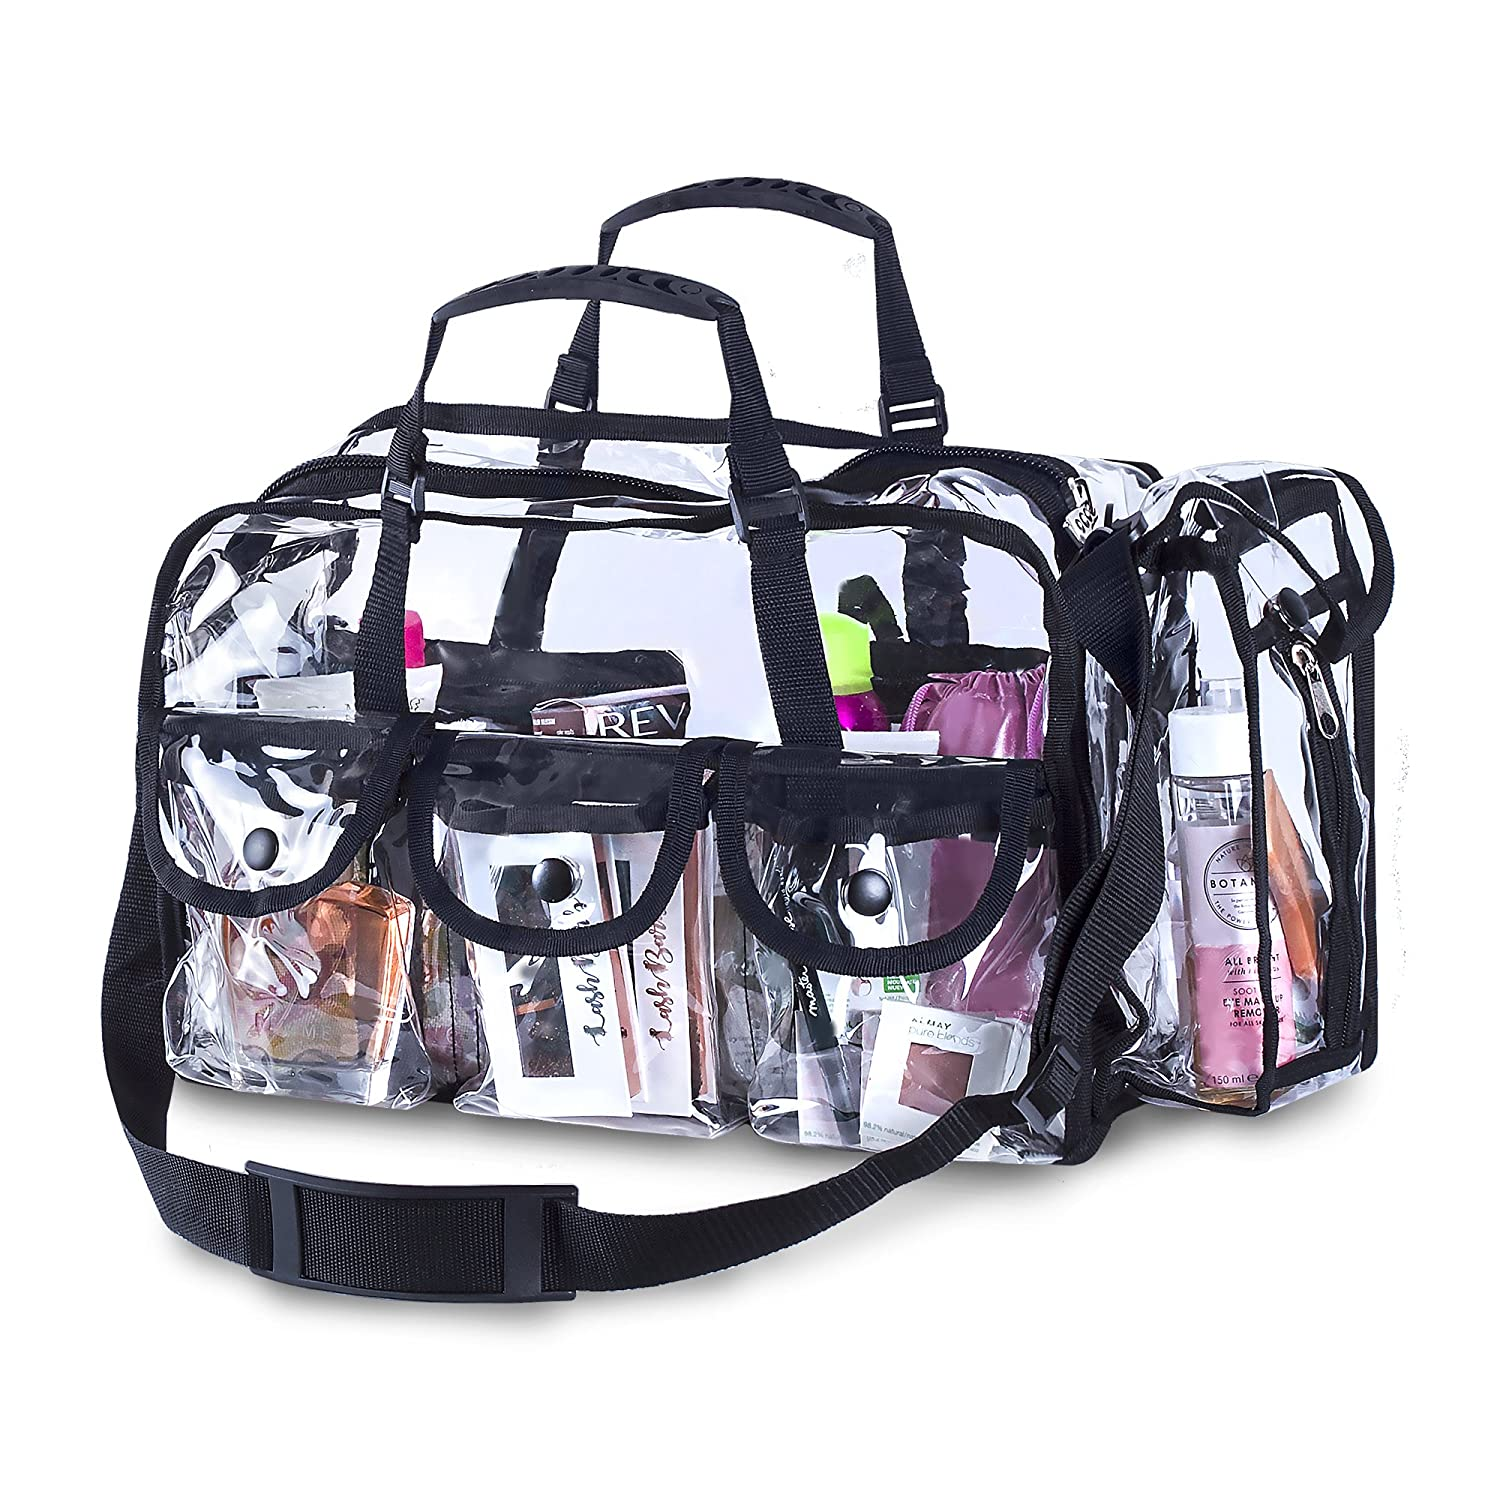 Premium Clear Makeup Organizer PVC Toiletry Bag 17 inch x 9 inch x 10 inch Transparent Cosmetic Bag for Women Sturdy Zipper and 4 External Pockets for Toiletries Adjustable Strap